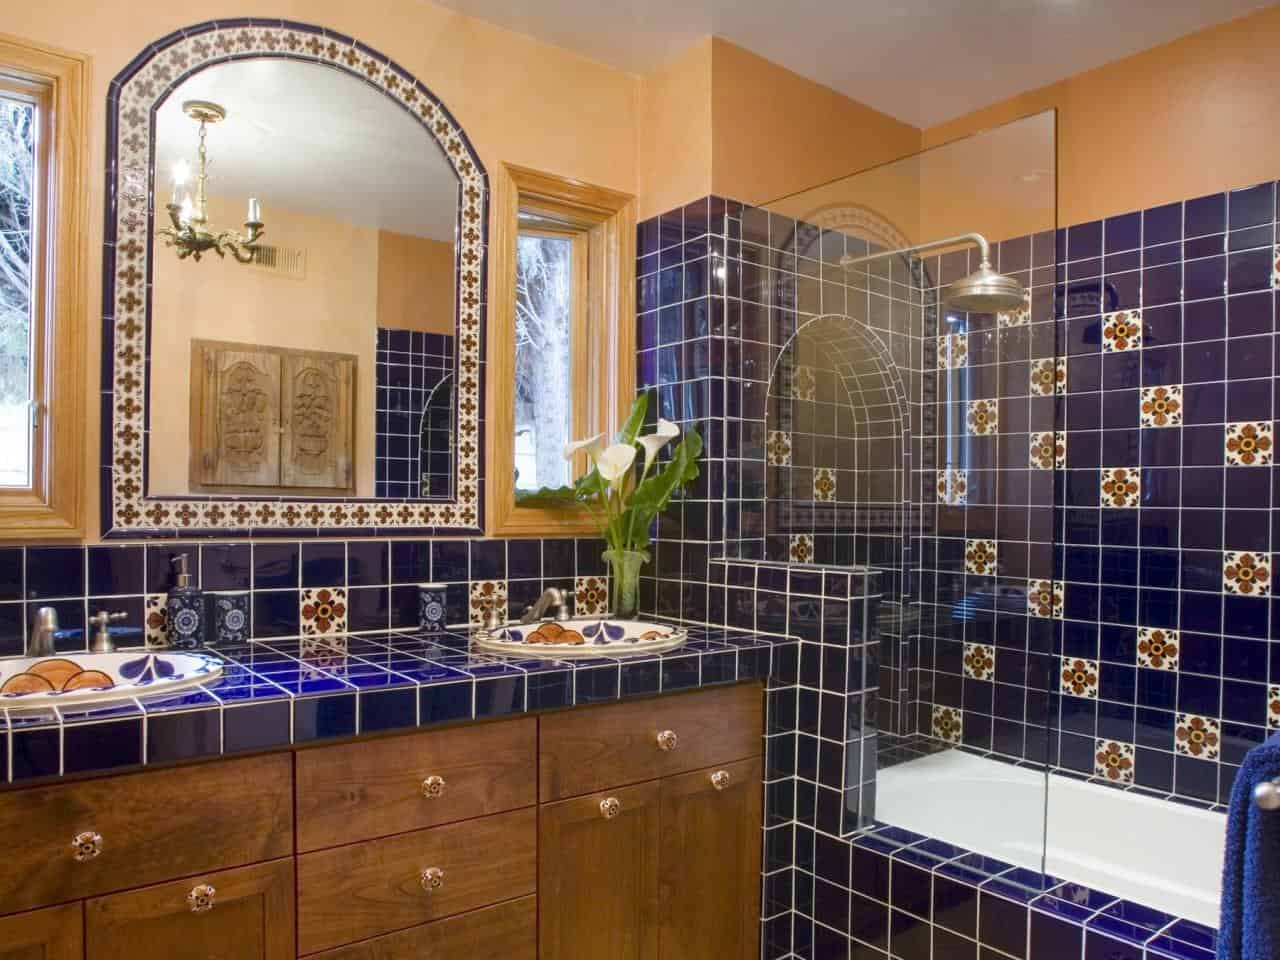 44 top talavera tile design ideas for Bathroom tiles spain